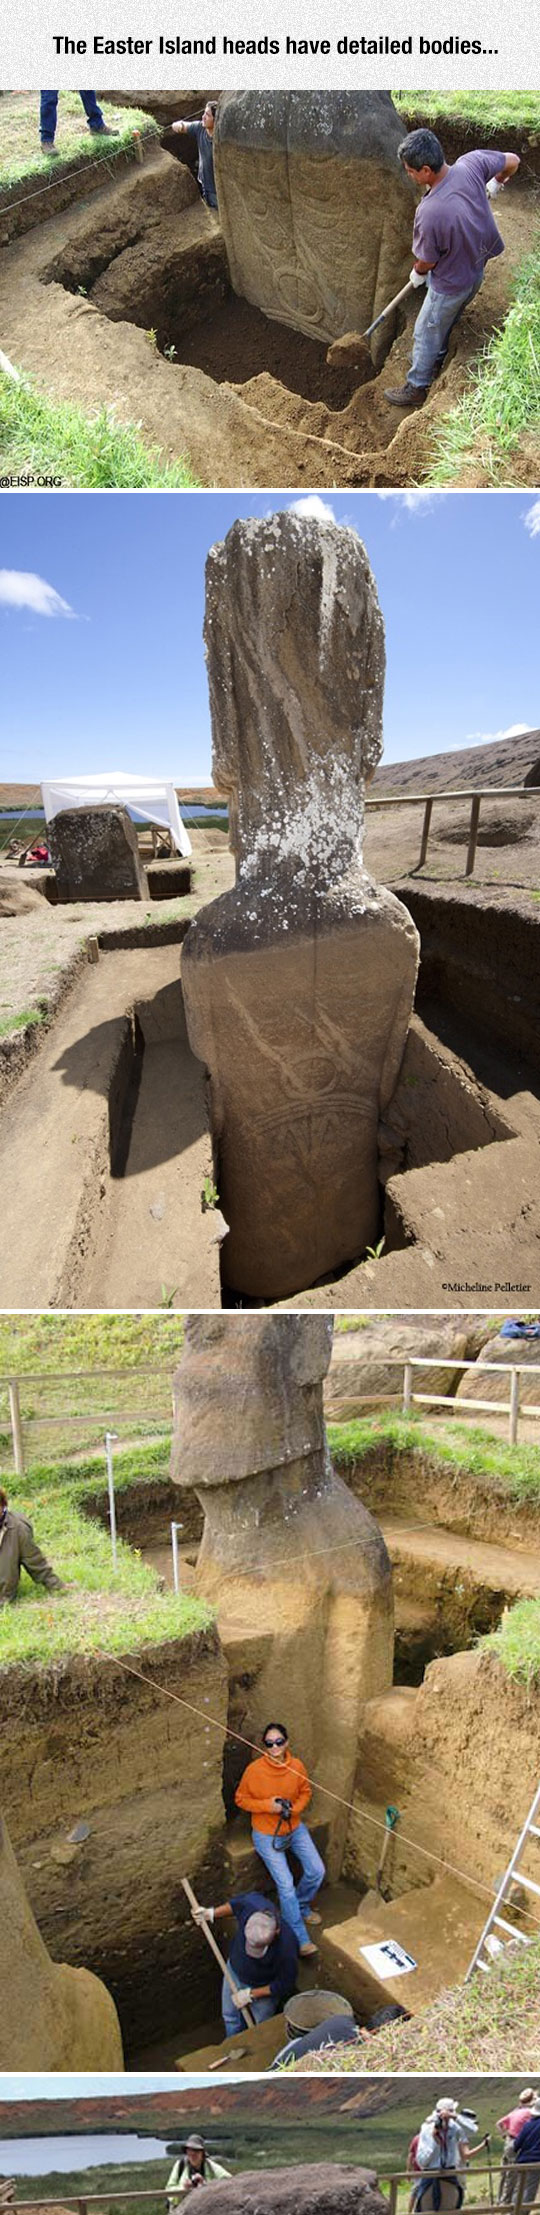 funny-Easter-Island-dirt-bodies-heads